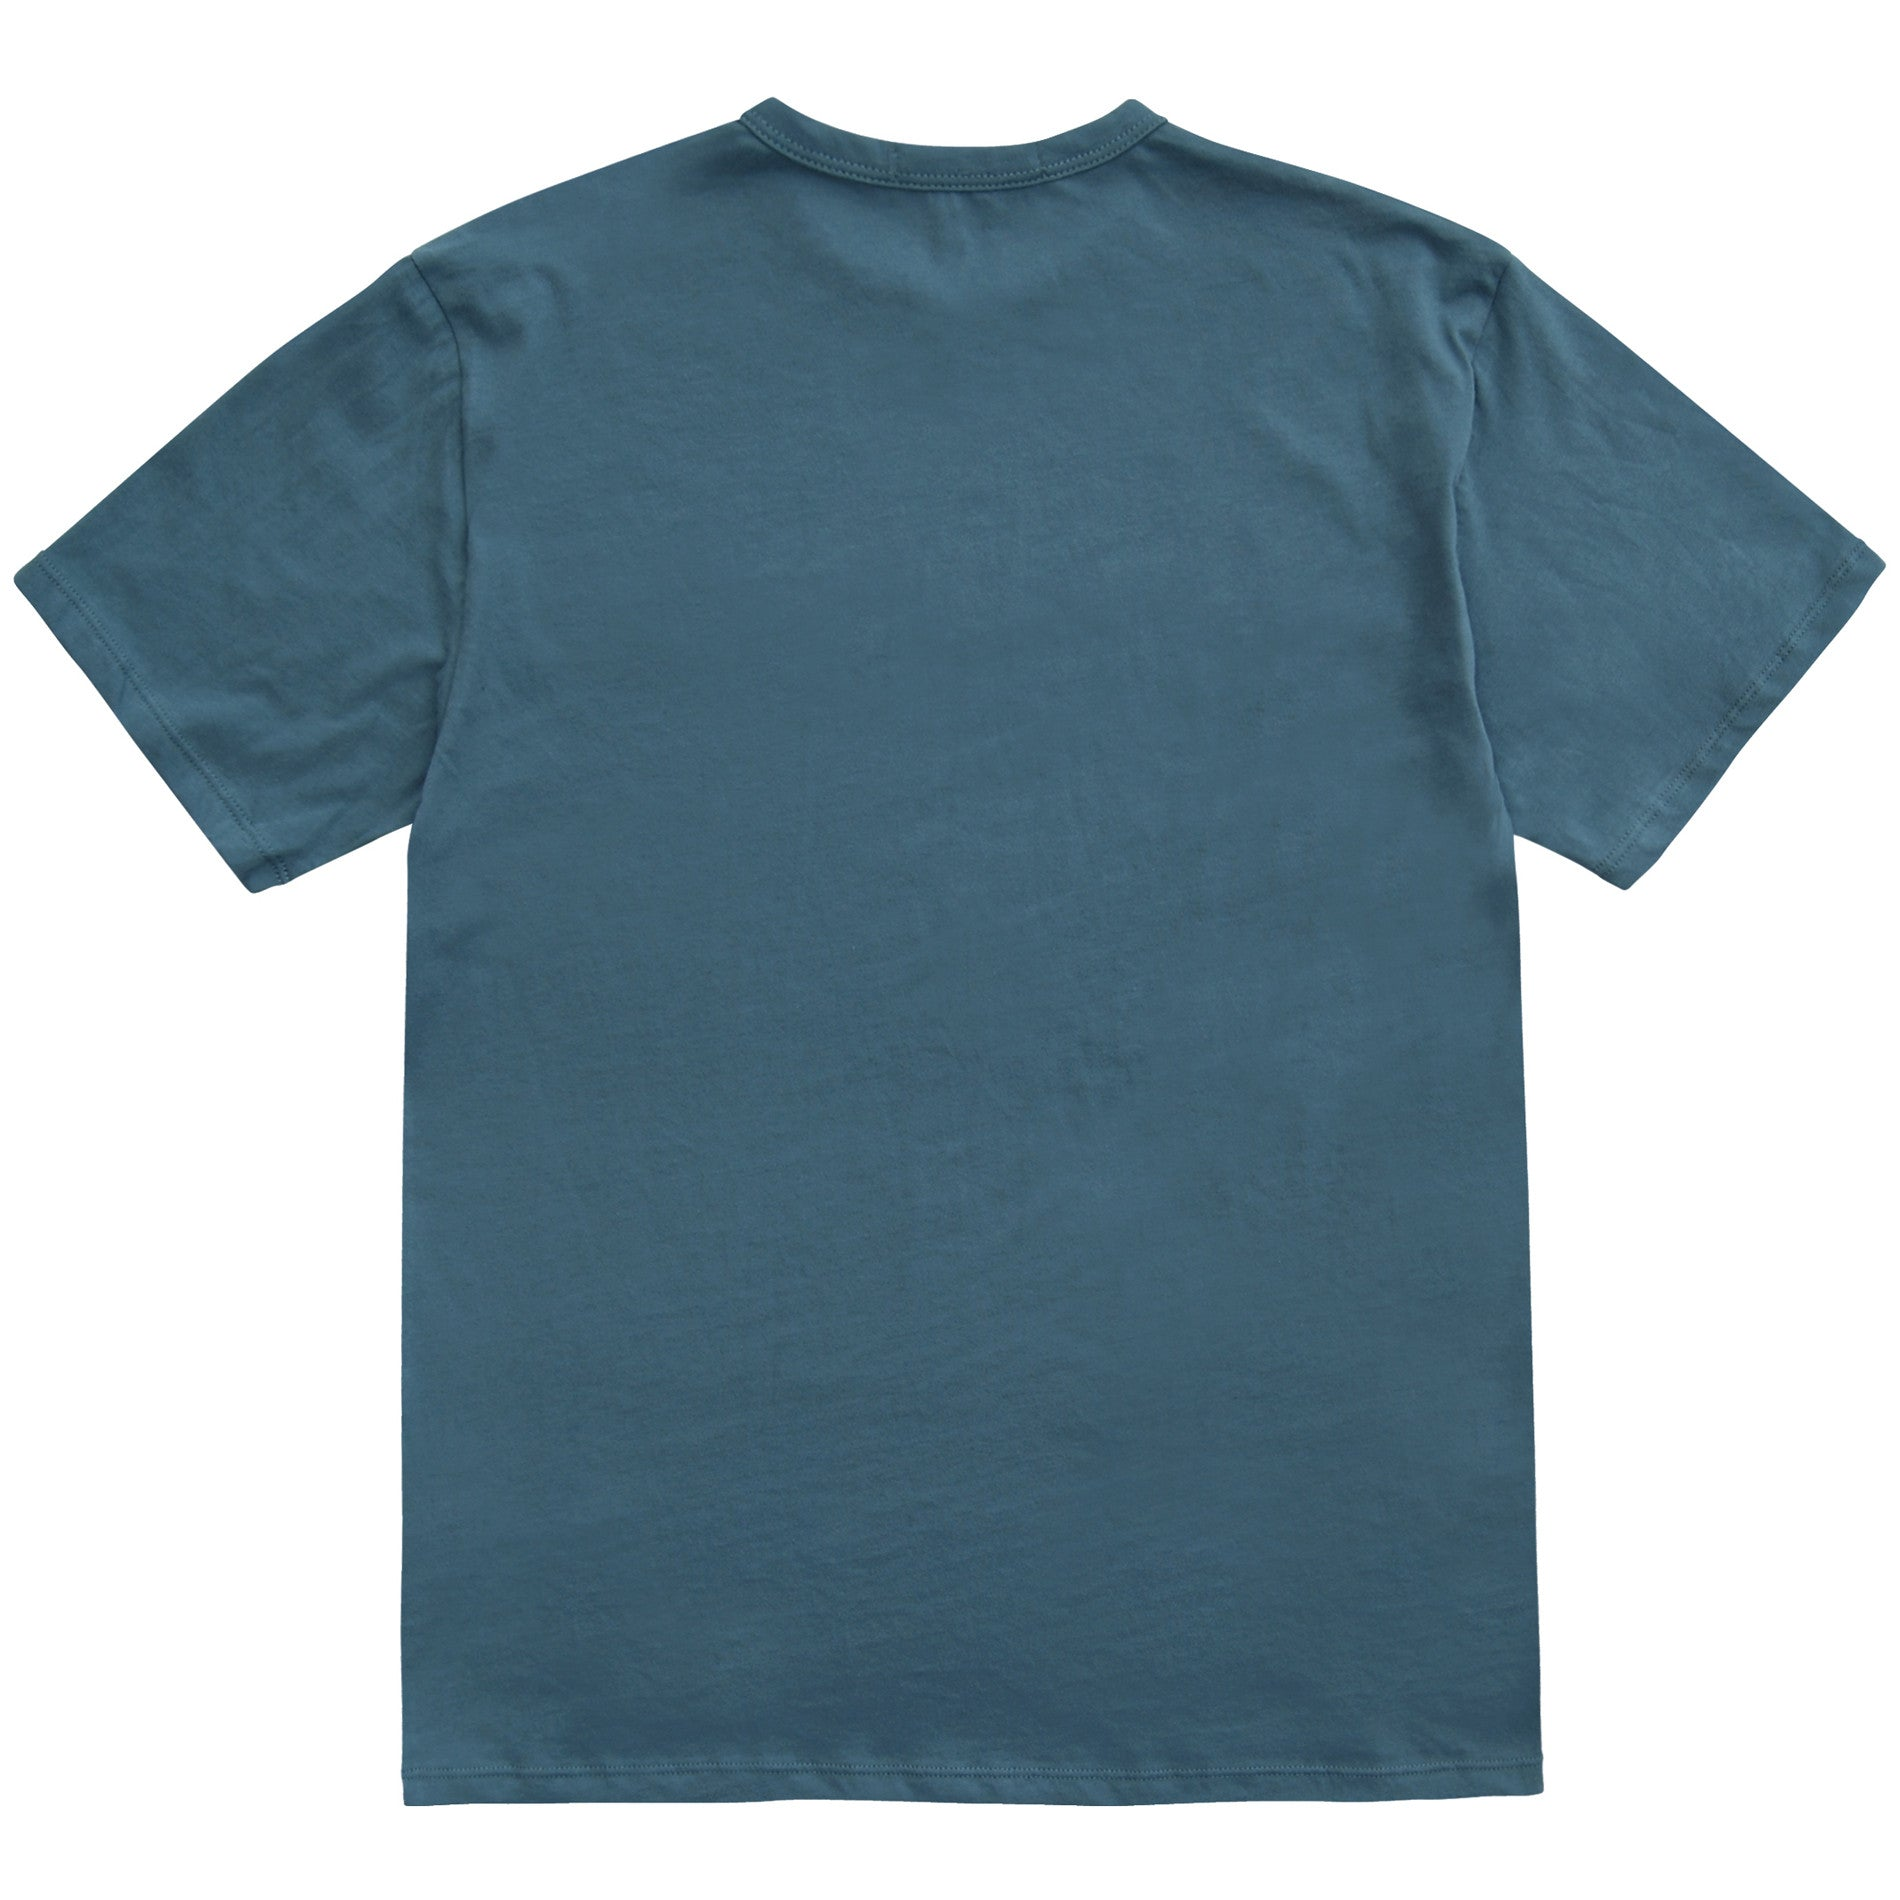 Sea Foam Wash Tshirt